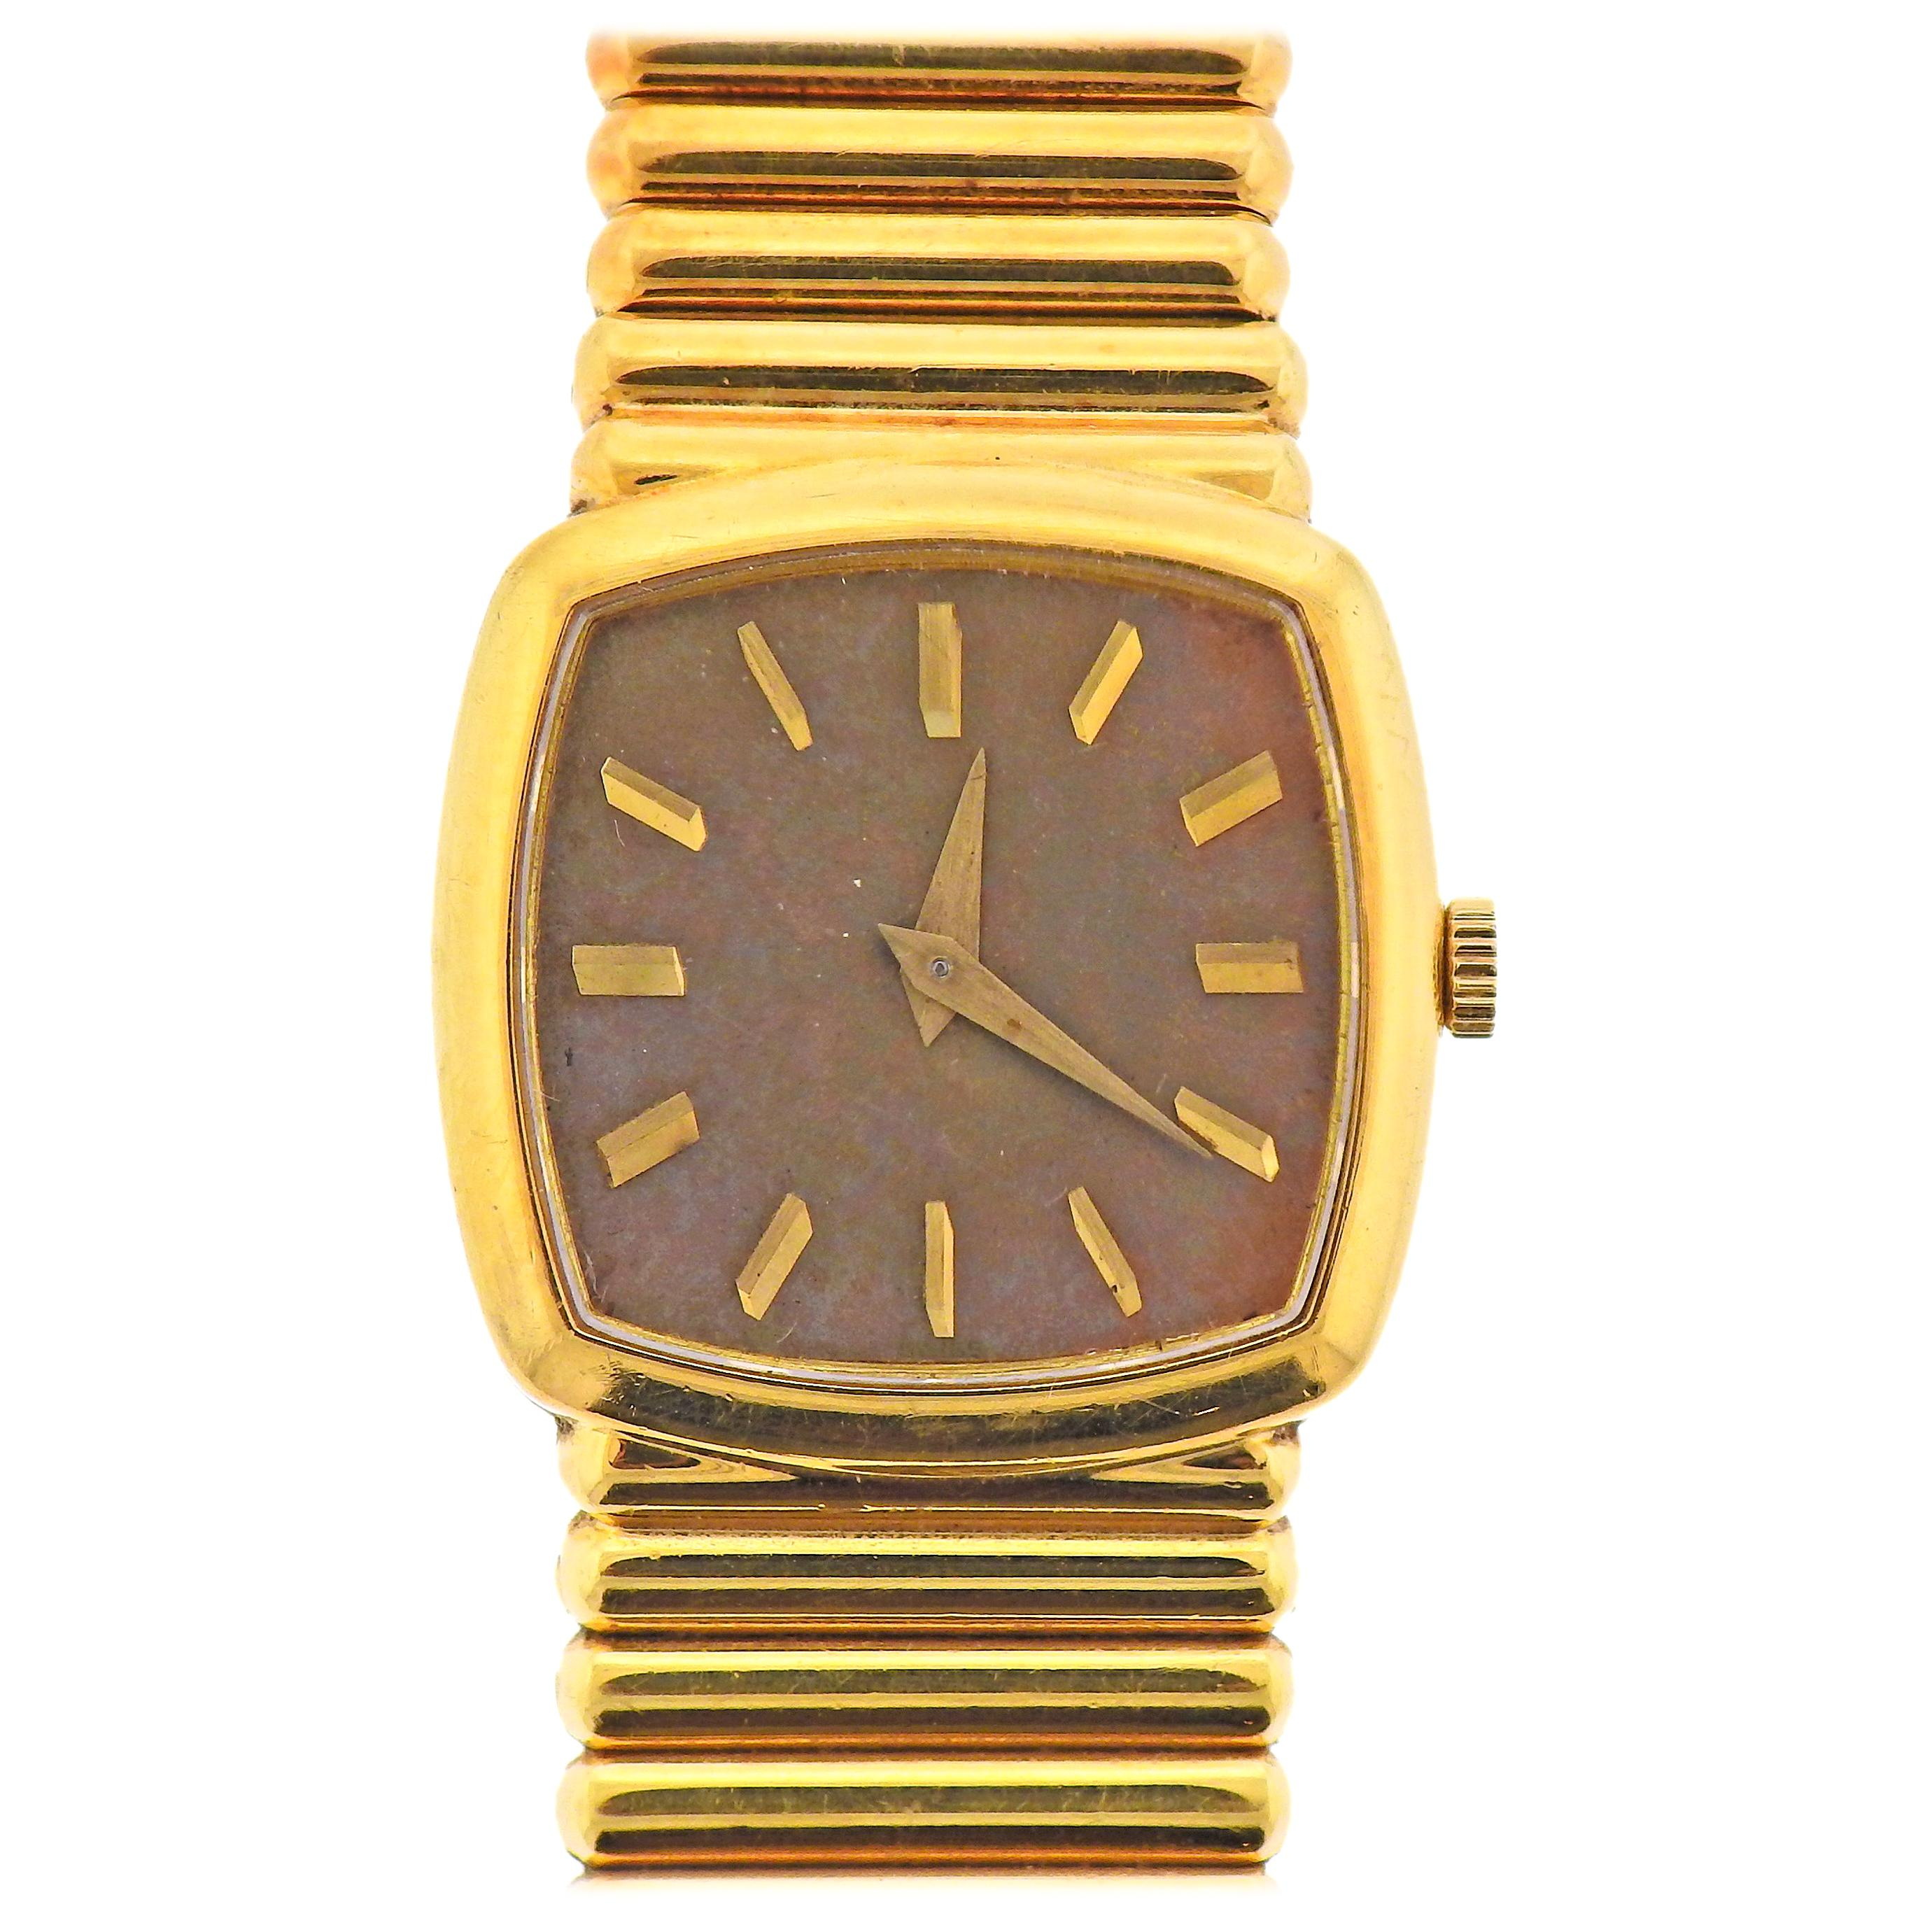 Piaget 1970s Gold Watch